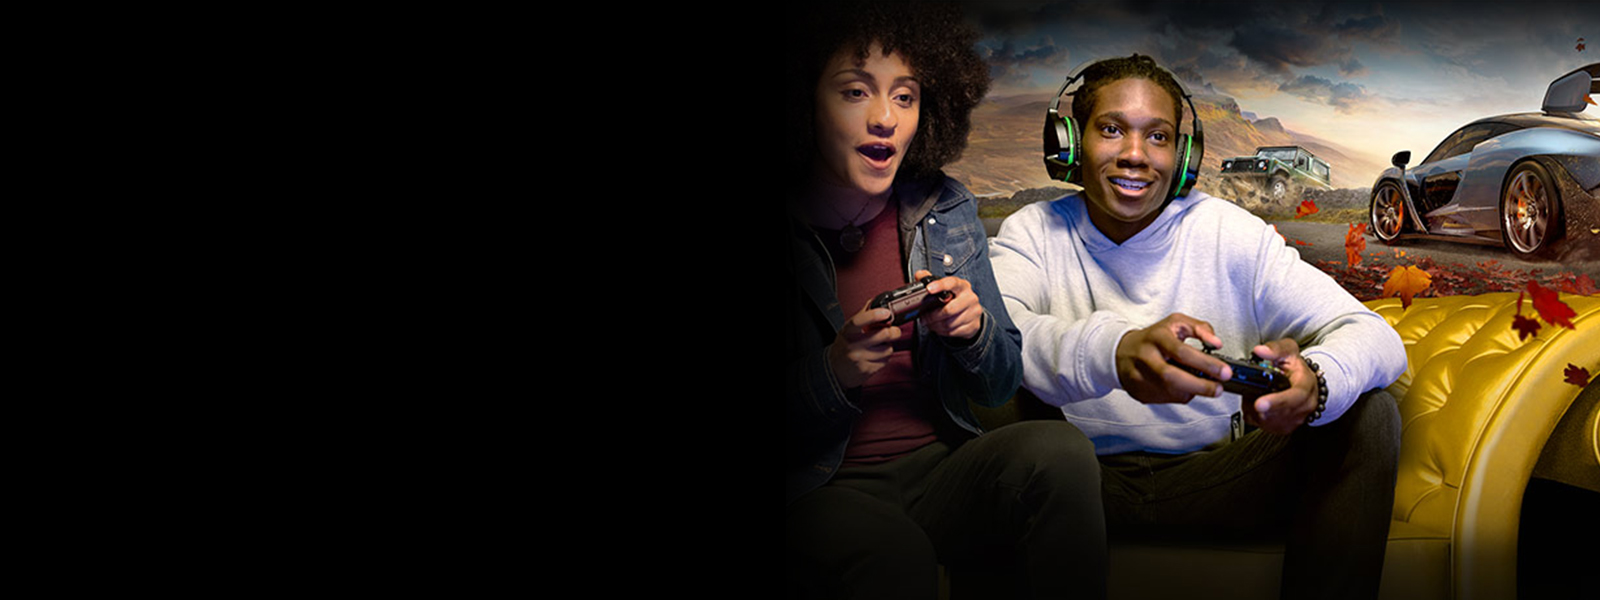 Two gamers sitting on a gold couch, playing Xbox together in front of a Forza Horizon 4 visual